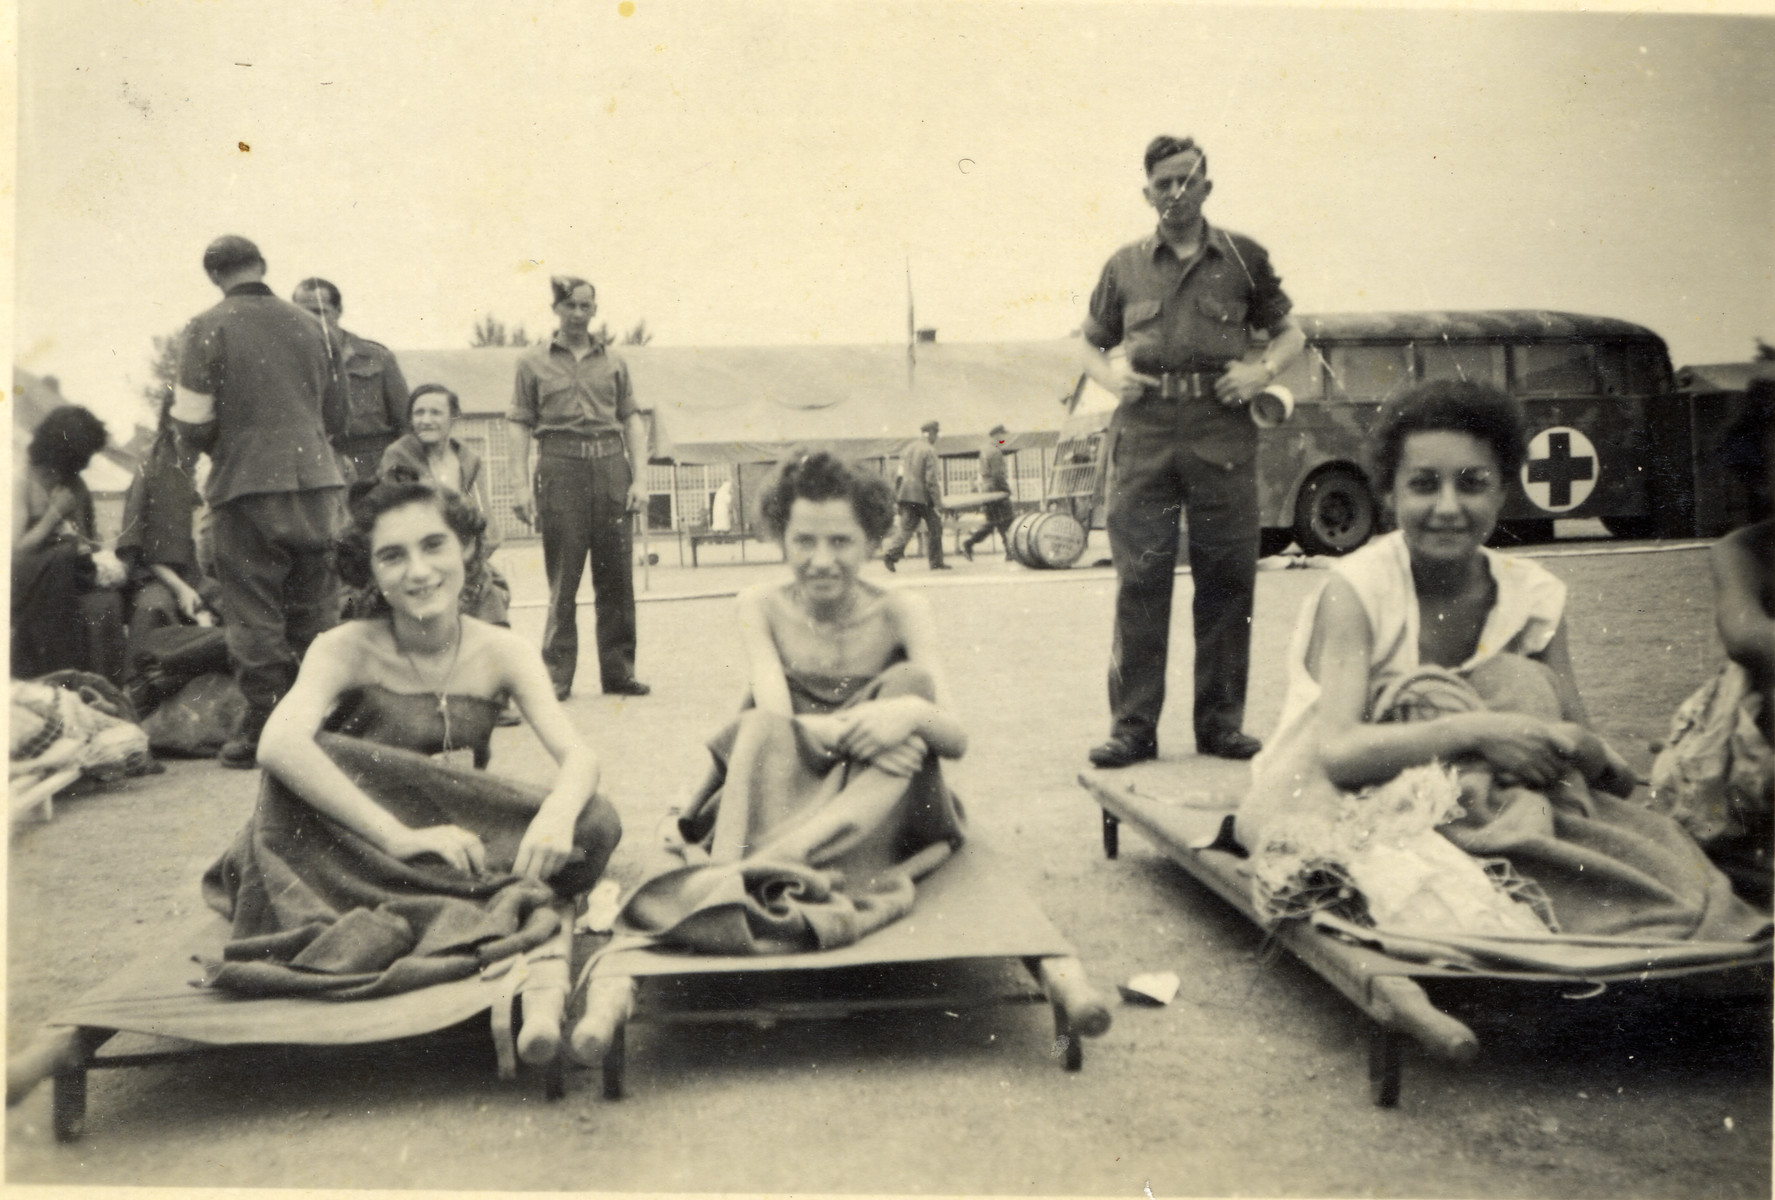 Three women sit outside on stretchers in front of an aid workers group and an ambulance